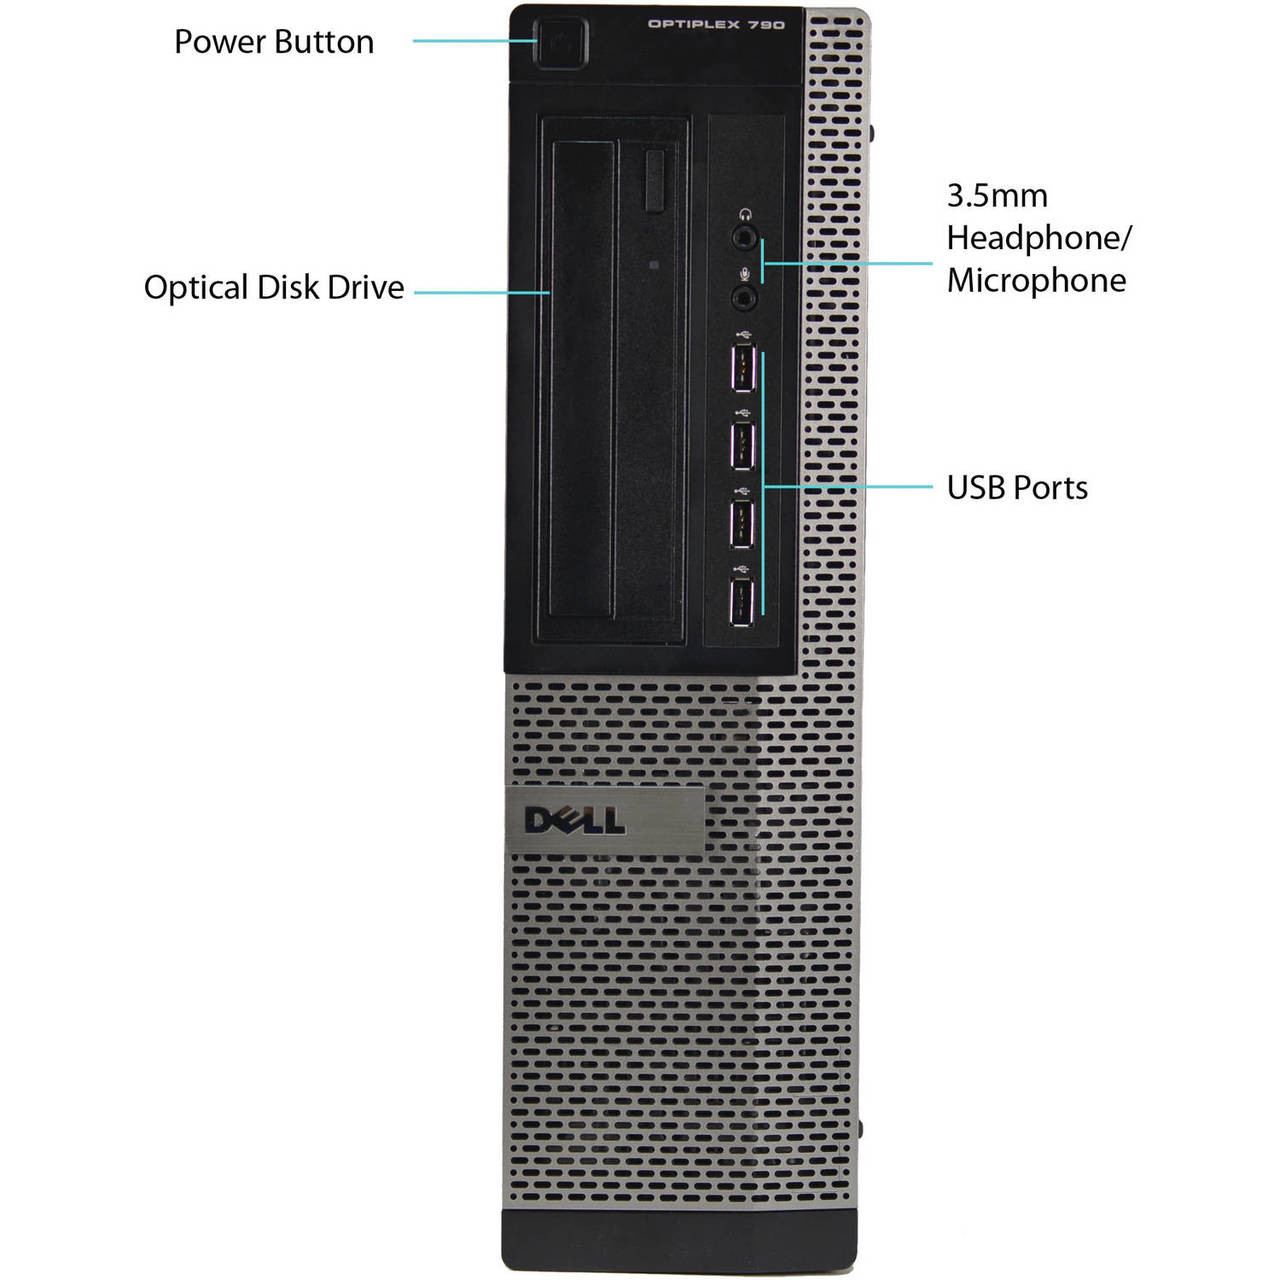 Dell Optiplex 790 - Front View 2